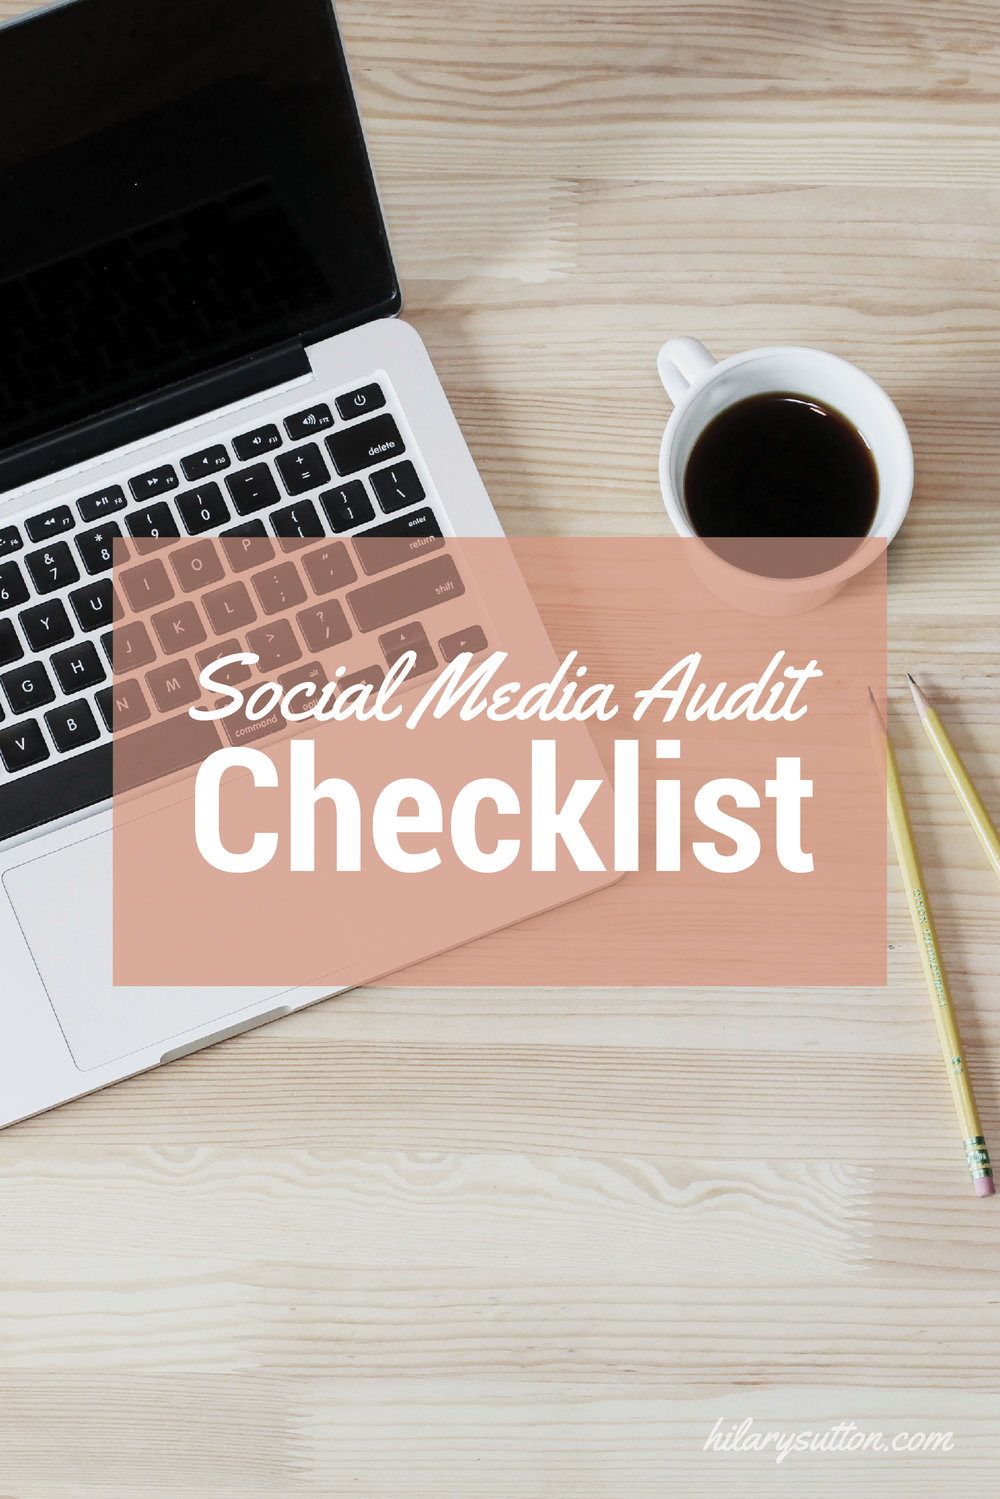 Social Media Audit Checklist Graphic Checkist Pinterest.jpg